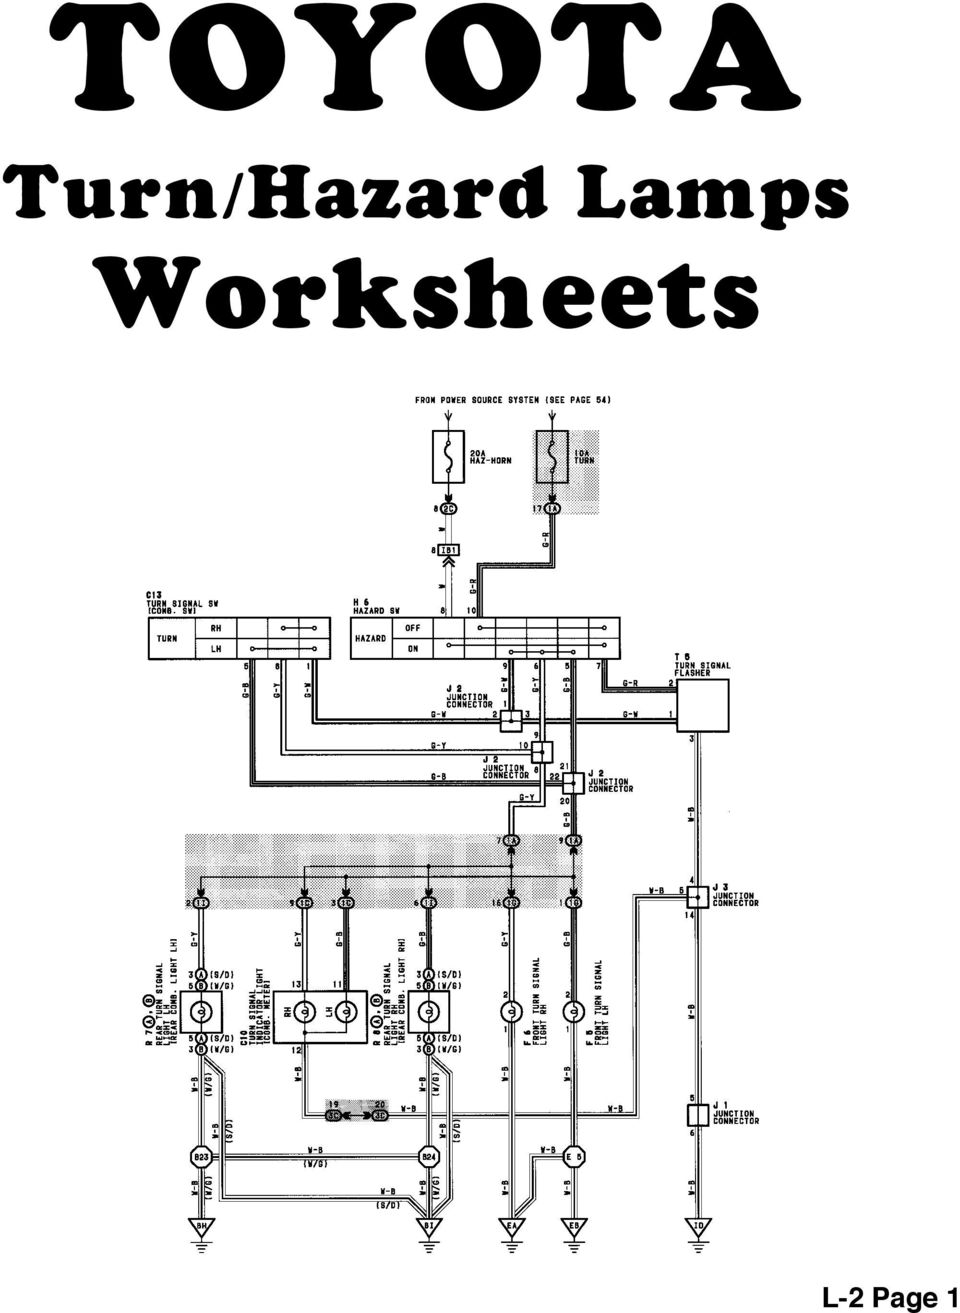 medium resolution of 16 toyota turn signal hazard lamps reference l 2 page 2